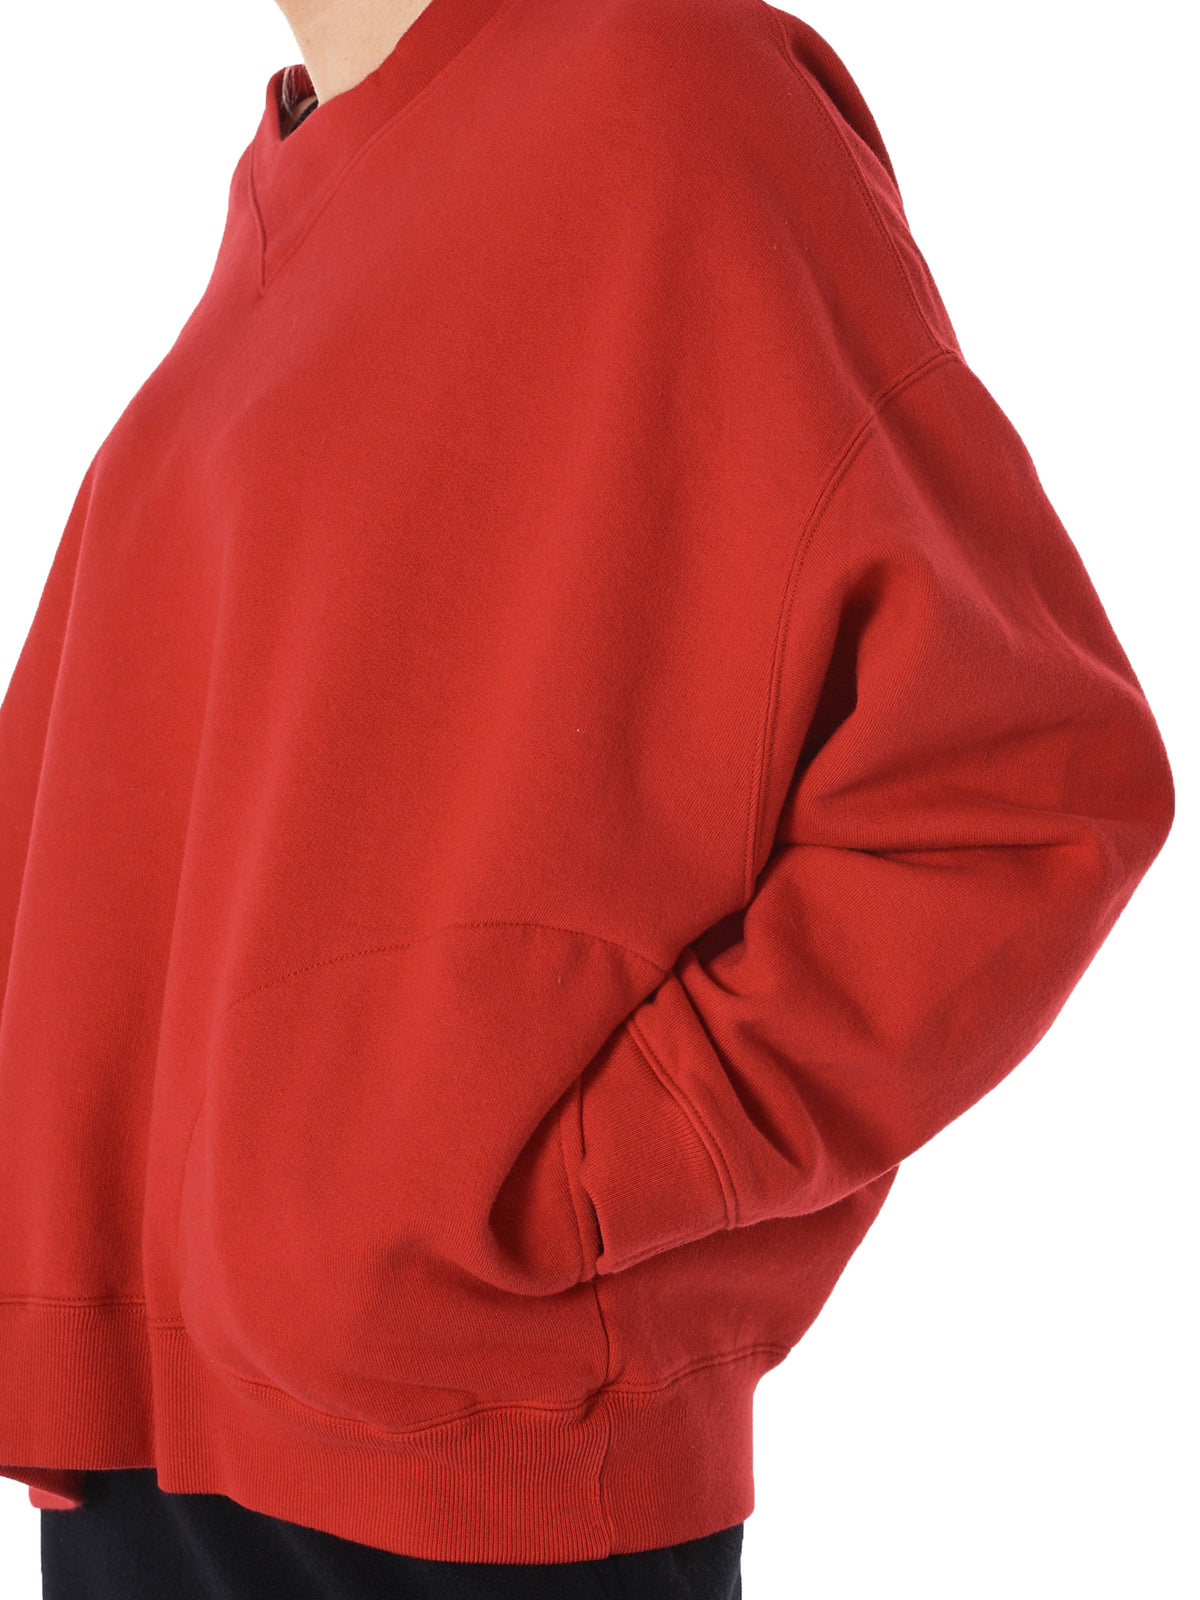 'VINCE' Cotton Pullover (VINCE-T605-RED)